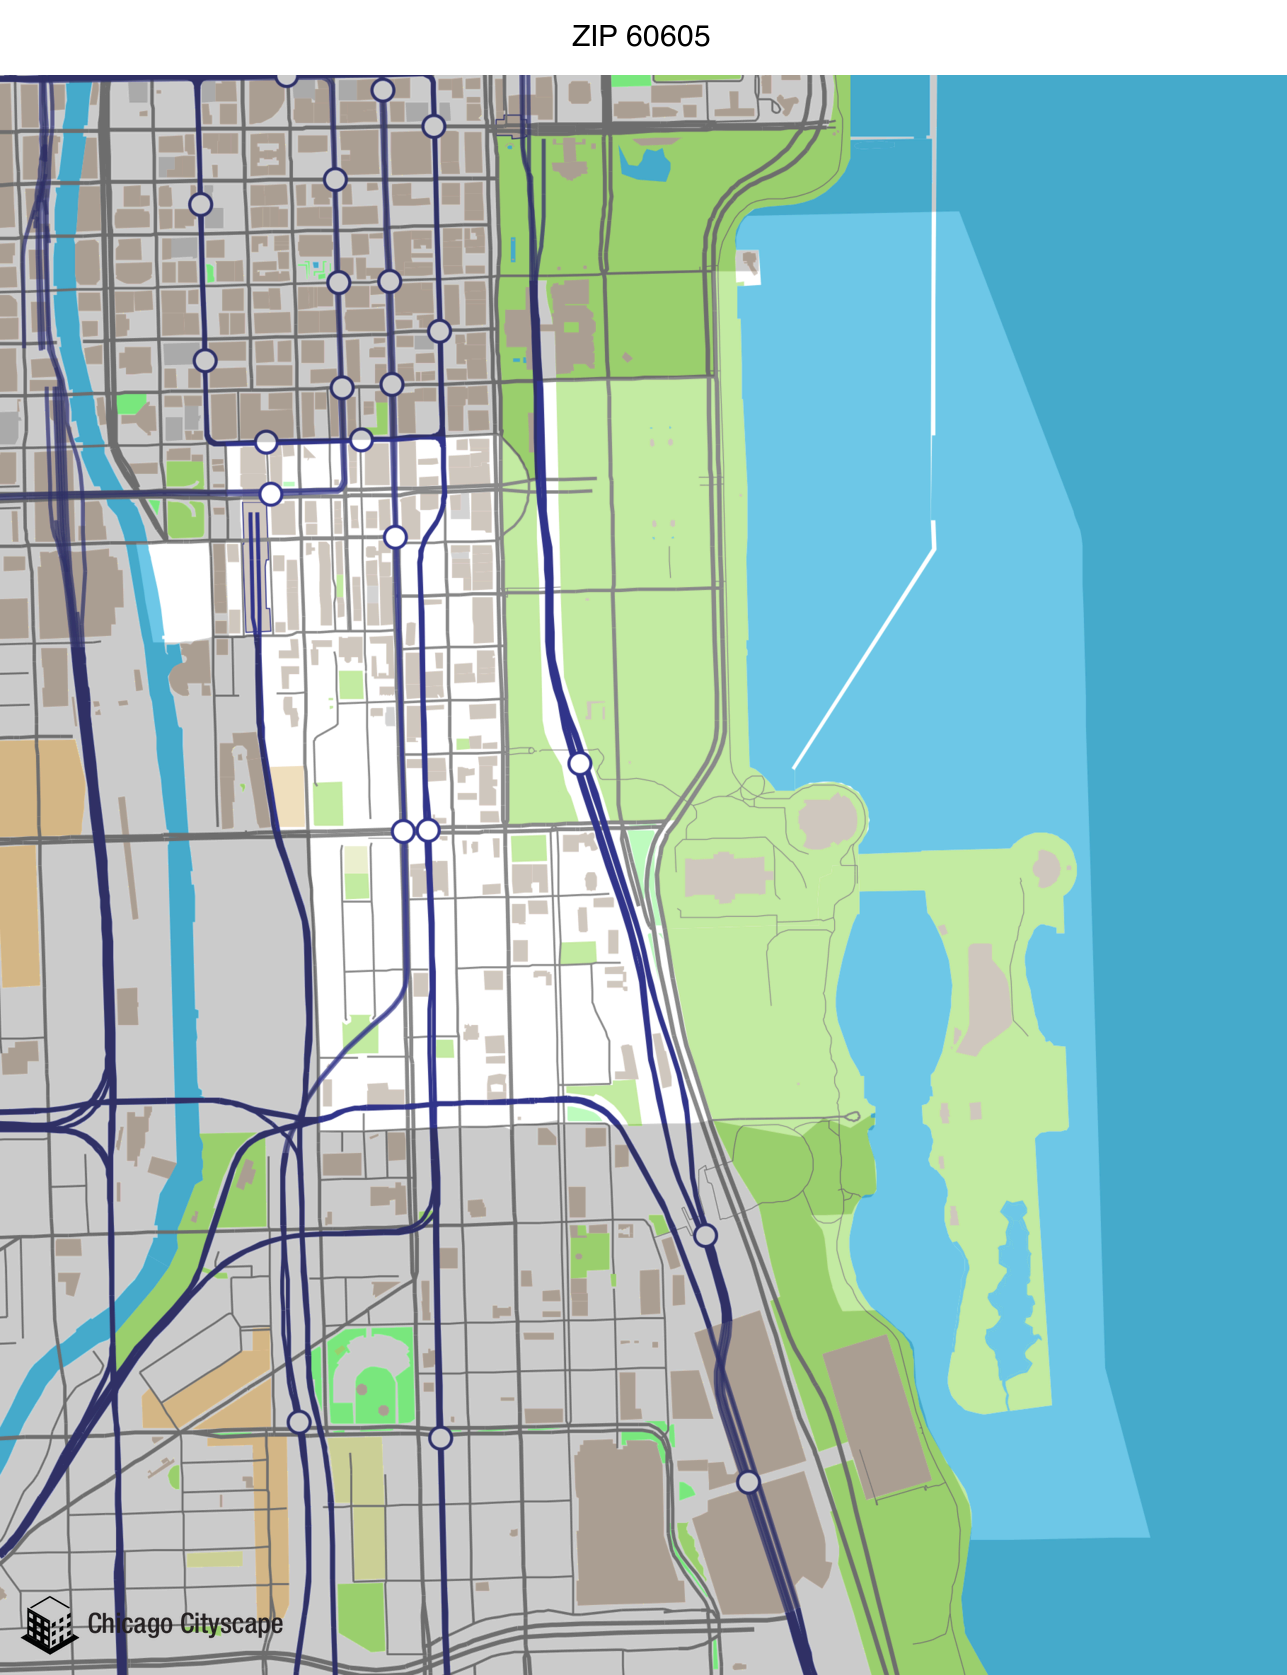 Map of building projects properties and businesses in 60605 ZIP Code